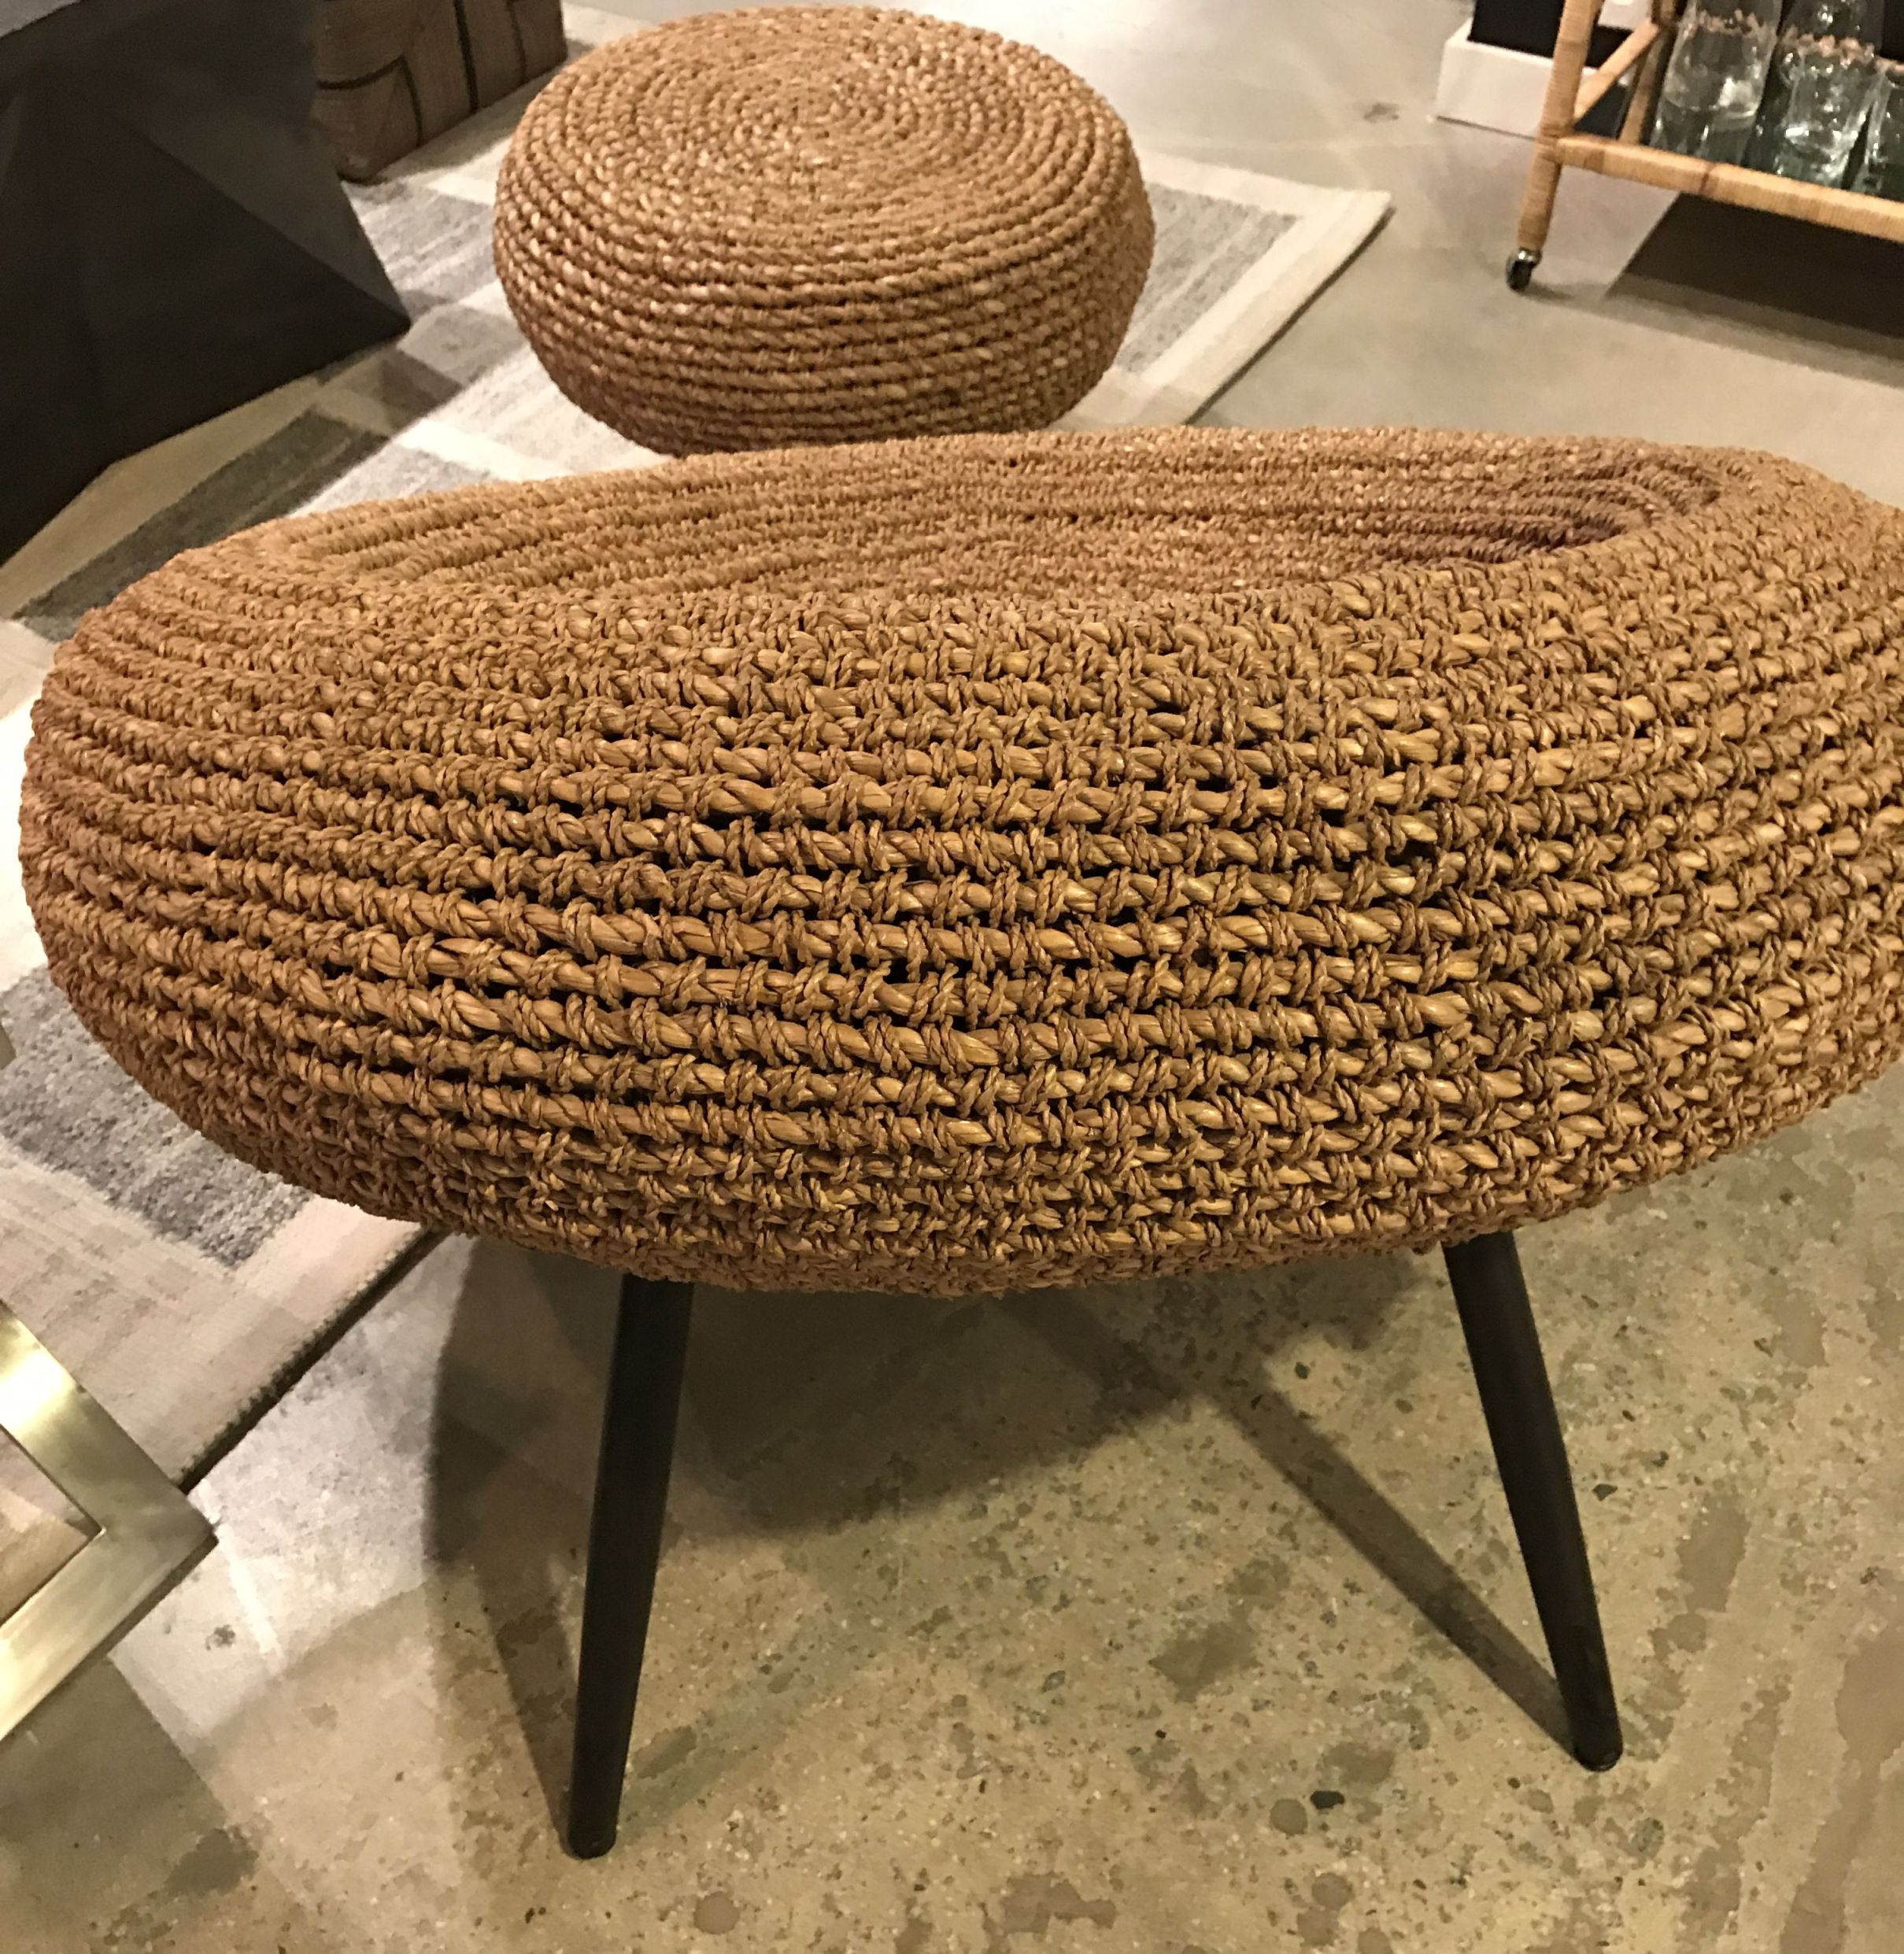 Seagrass Rope Bowl Chair Mecox Gardens